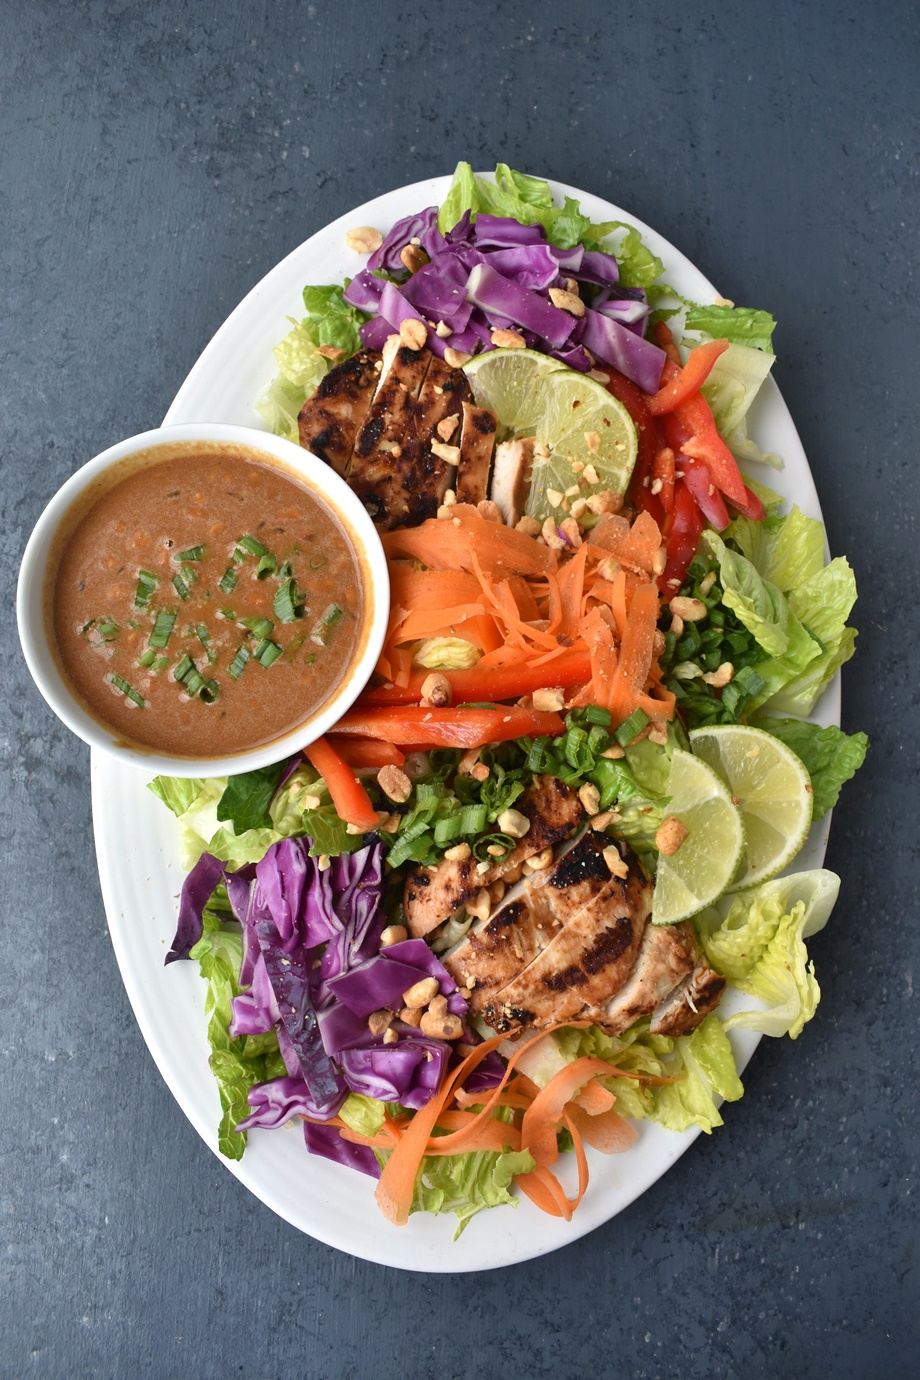 Thai Peanut Chicken Salad with peanut sauce